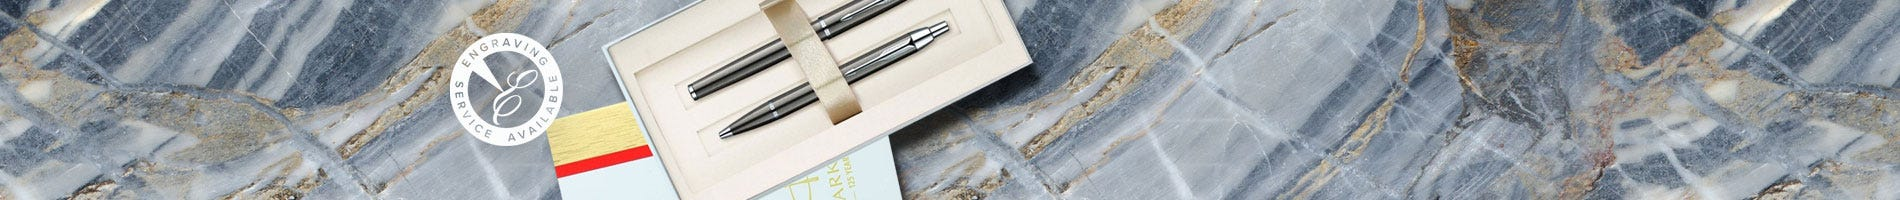 Parker pen gift set in gunmetal